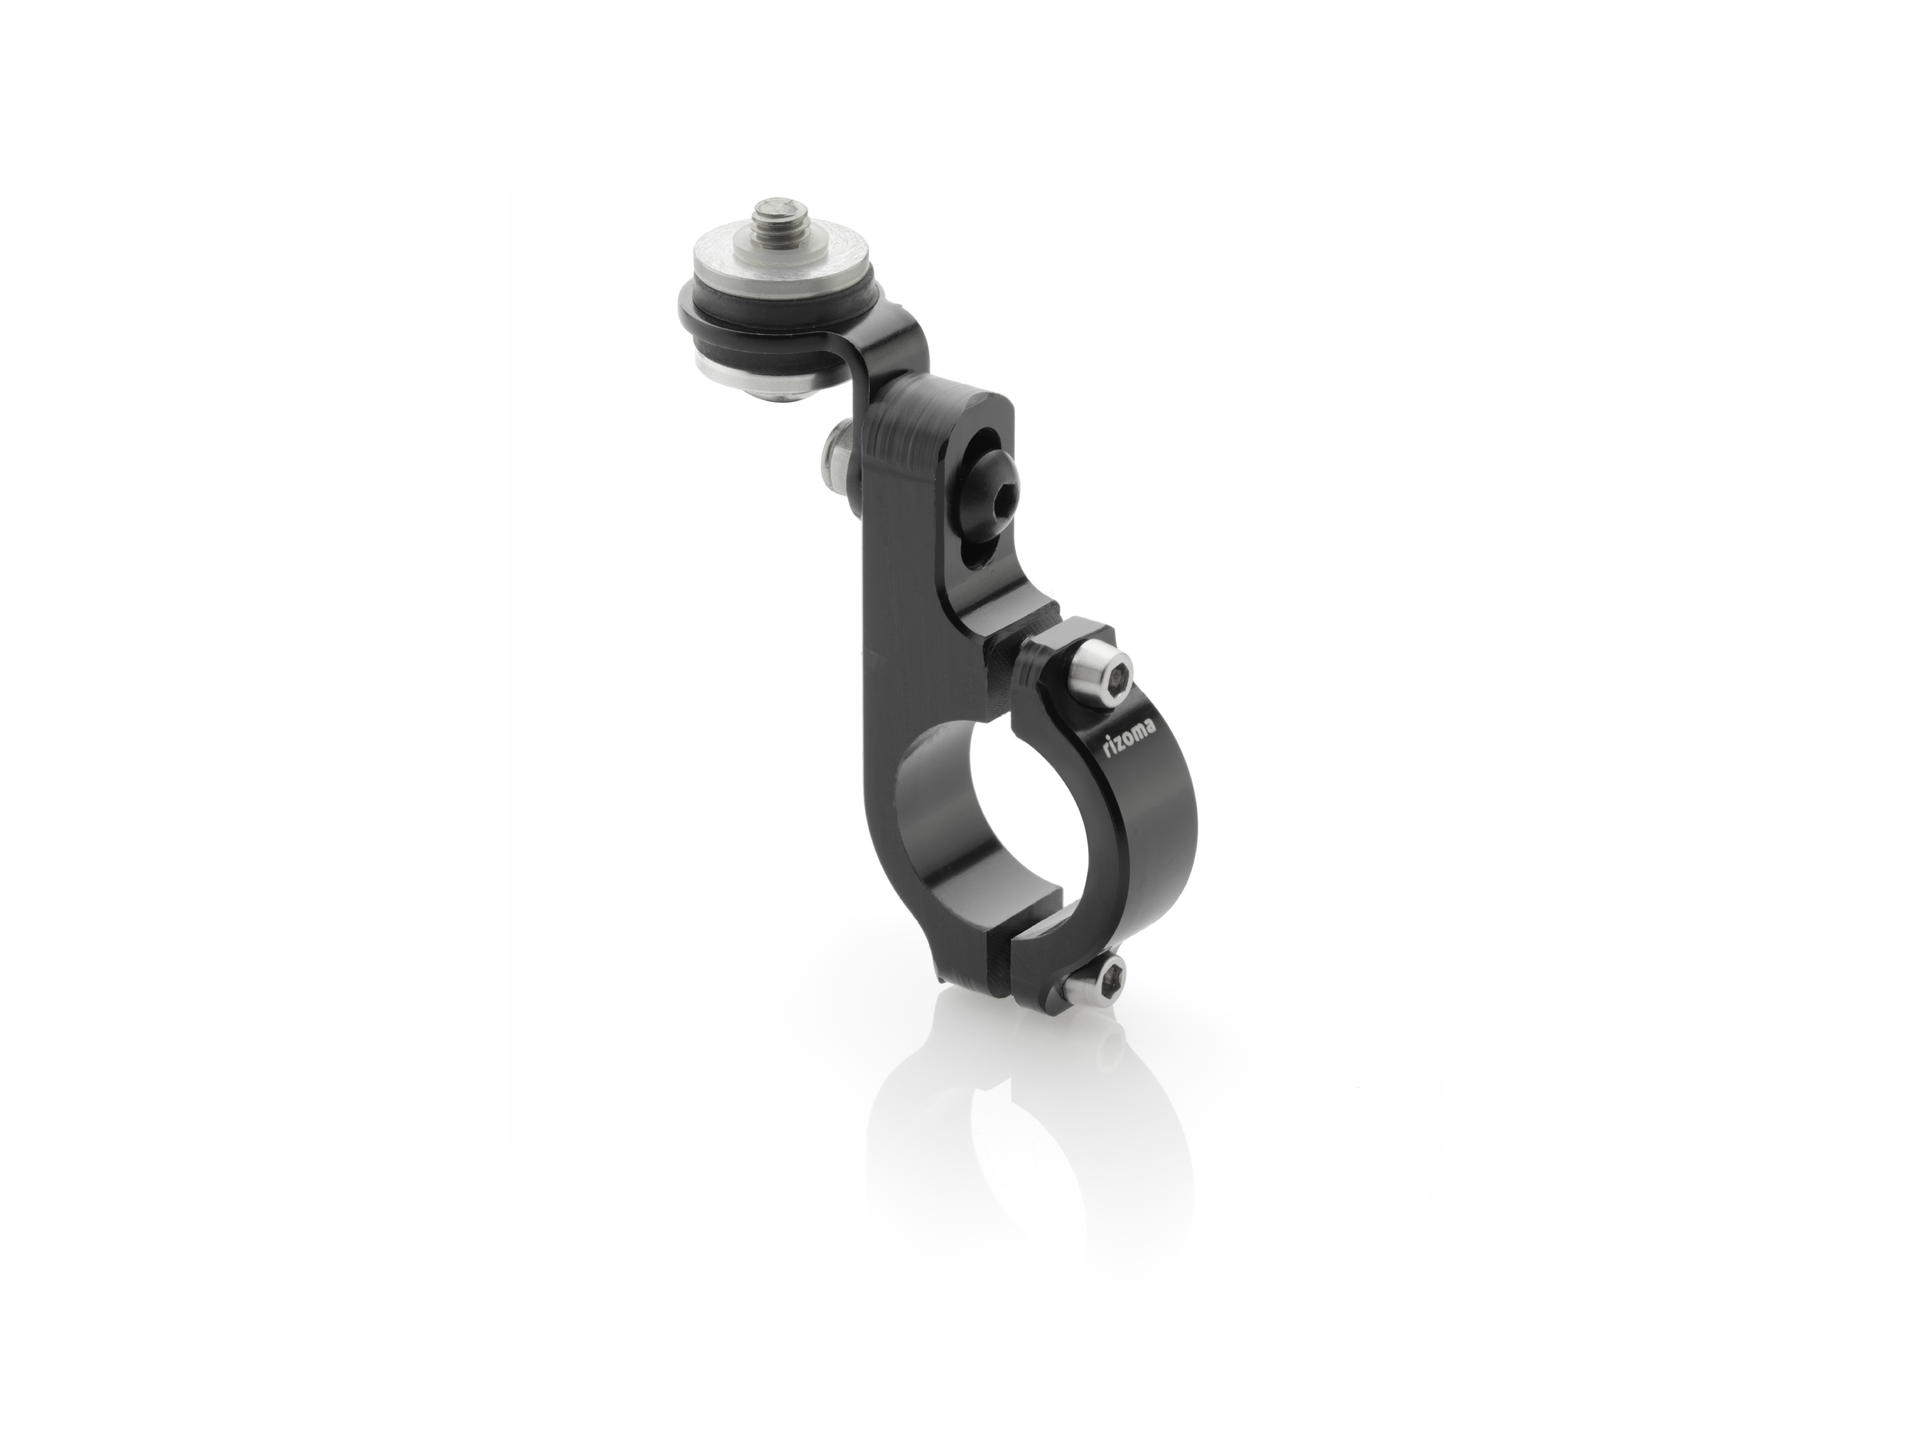 rizoma ct457b fluid tank adapter handlebar mount